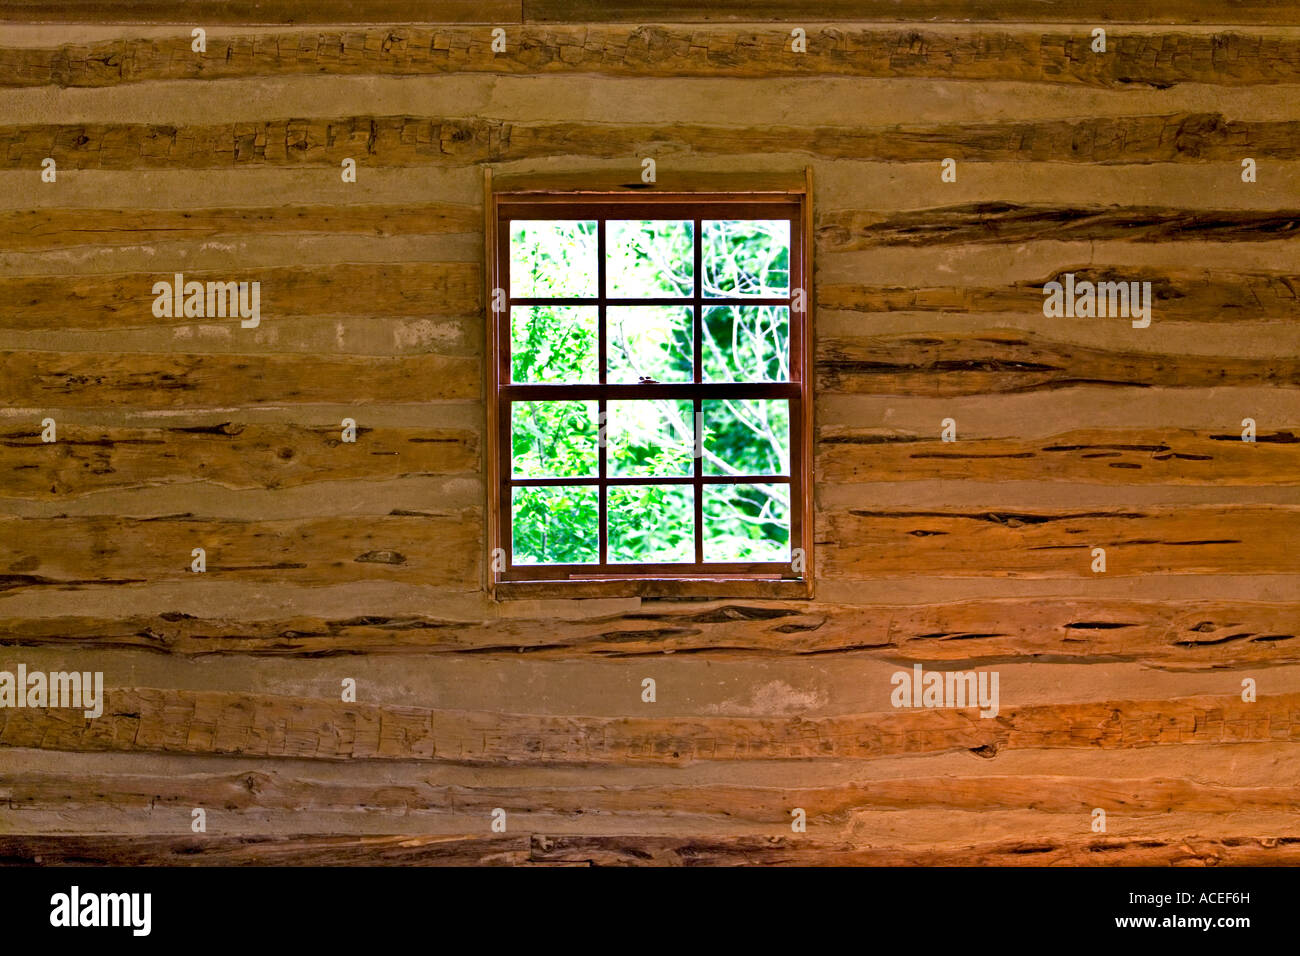 Log cabin window looking out into forest walls and